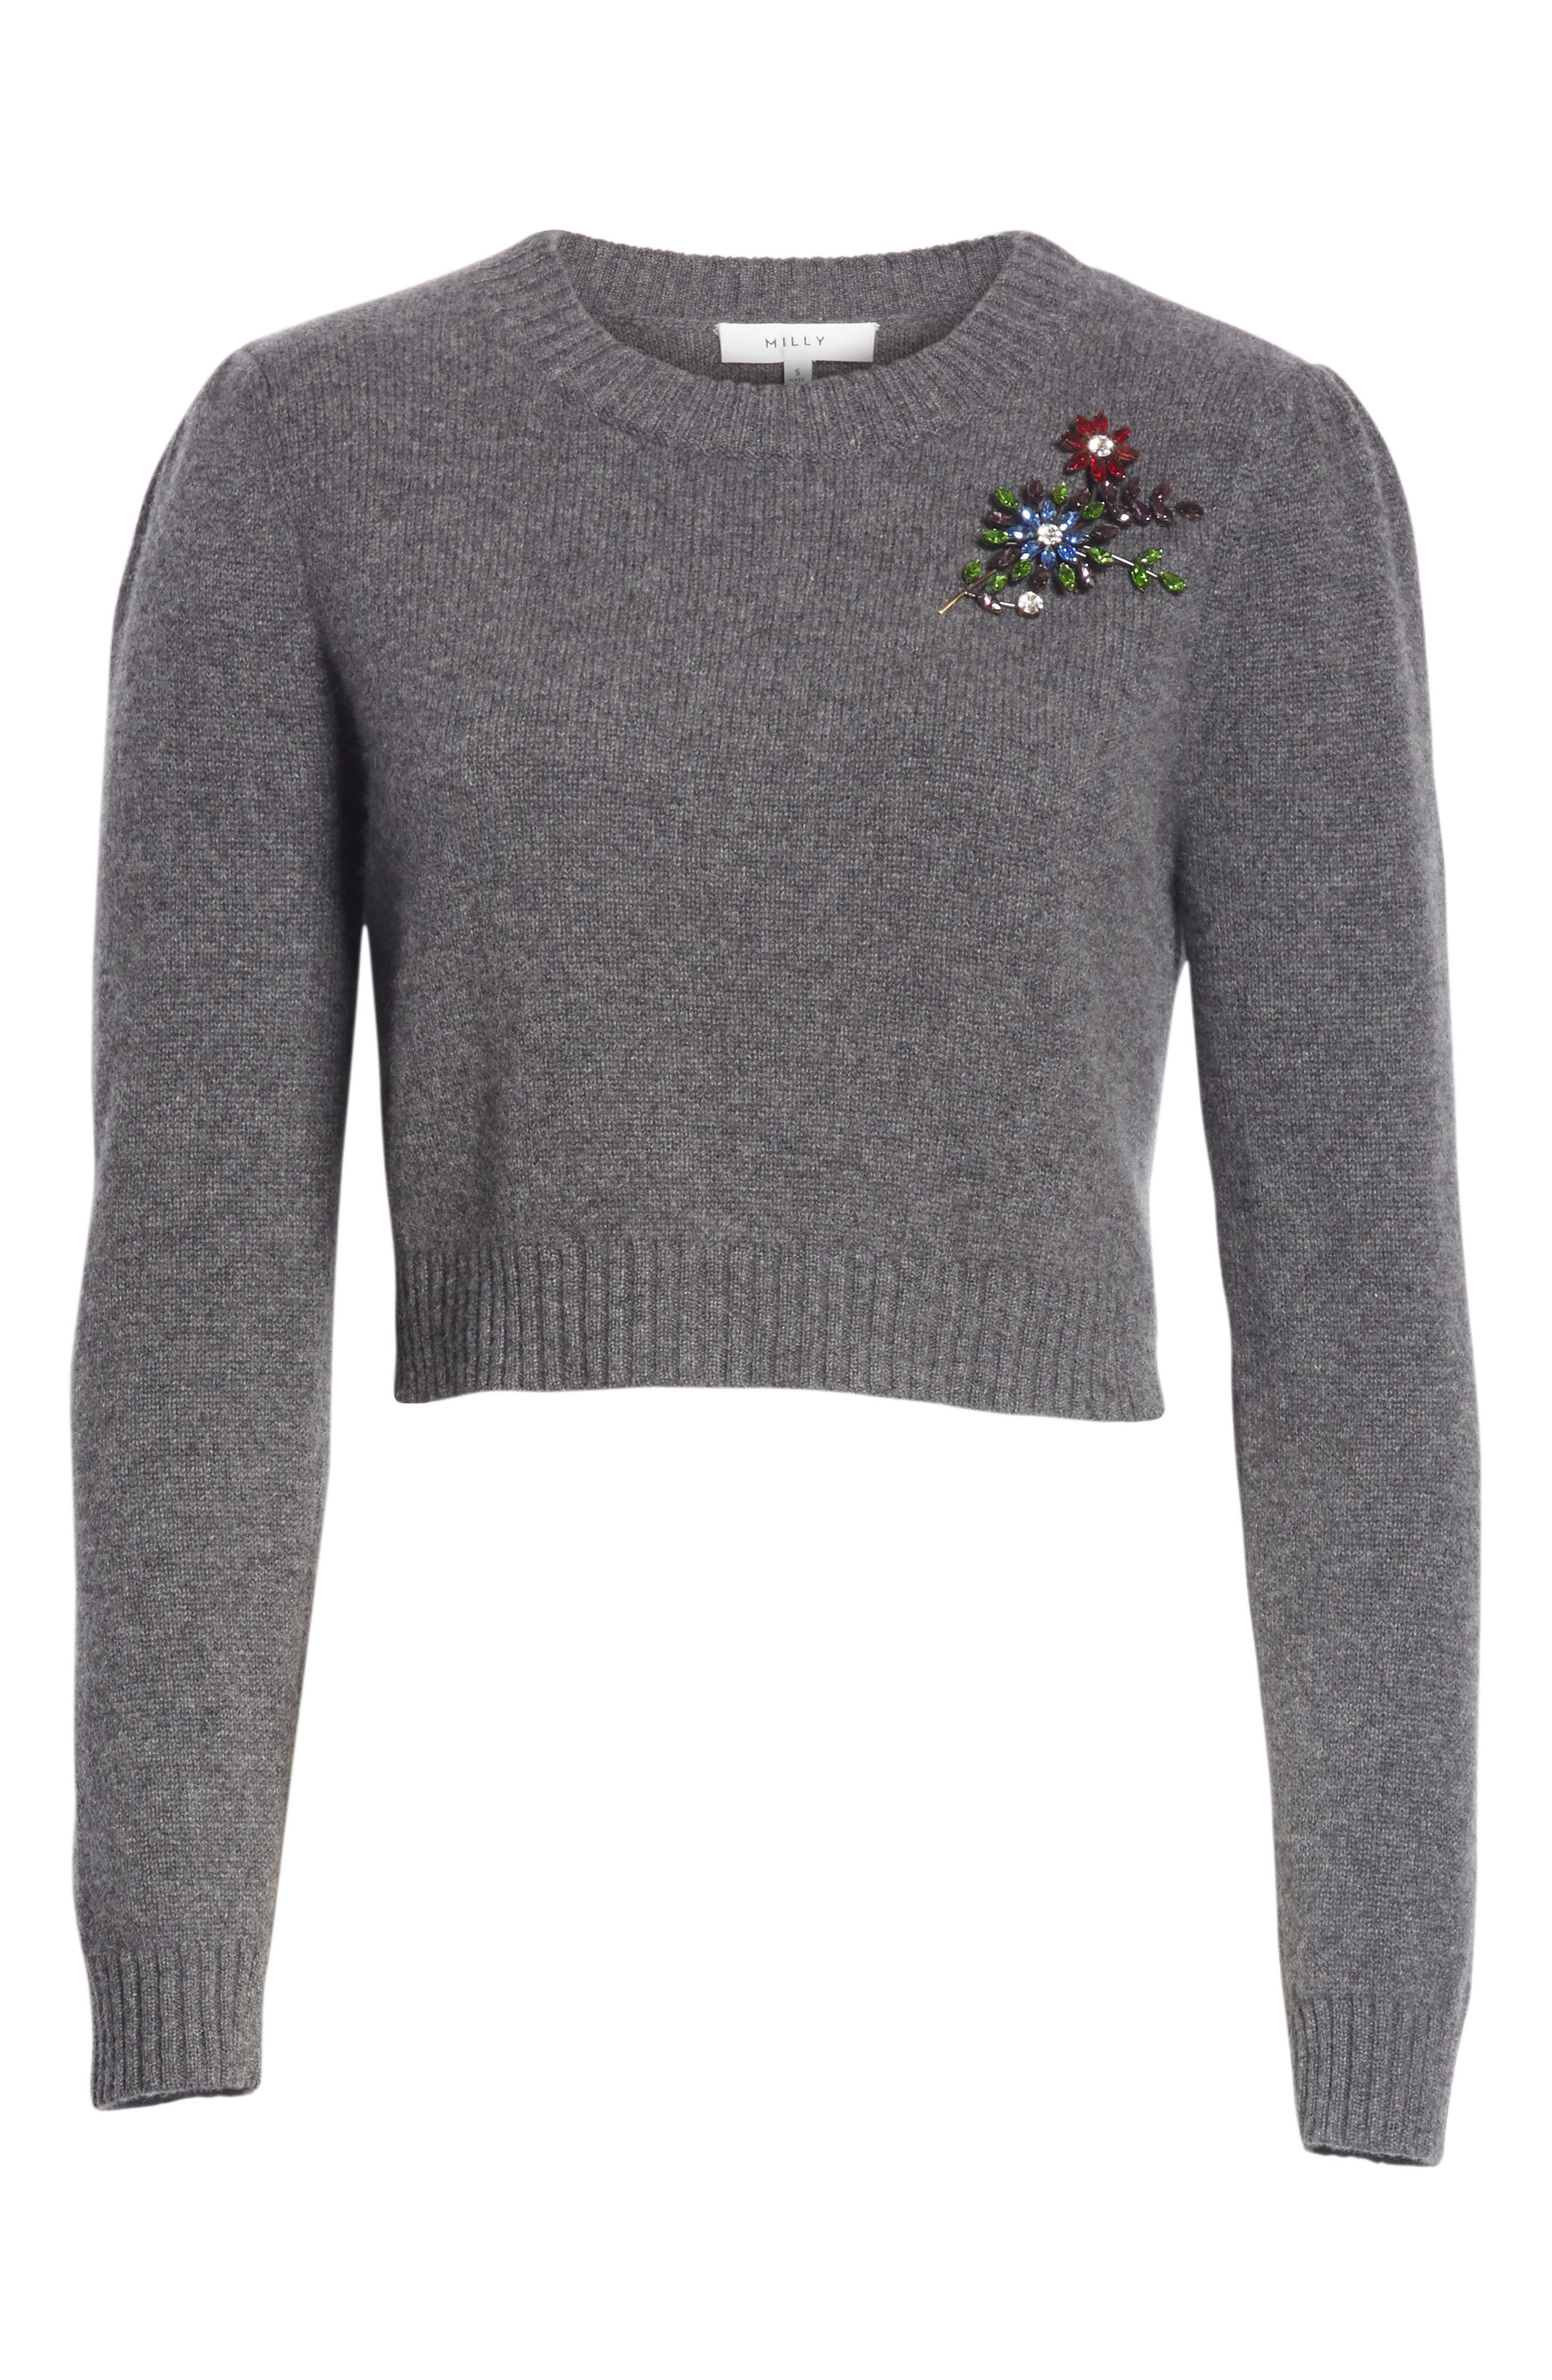 Cashmere Crop Pin Sweater,                             Alternate thumbnail 6, color,                             HEATHER GREY